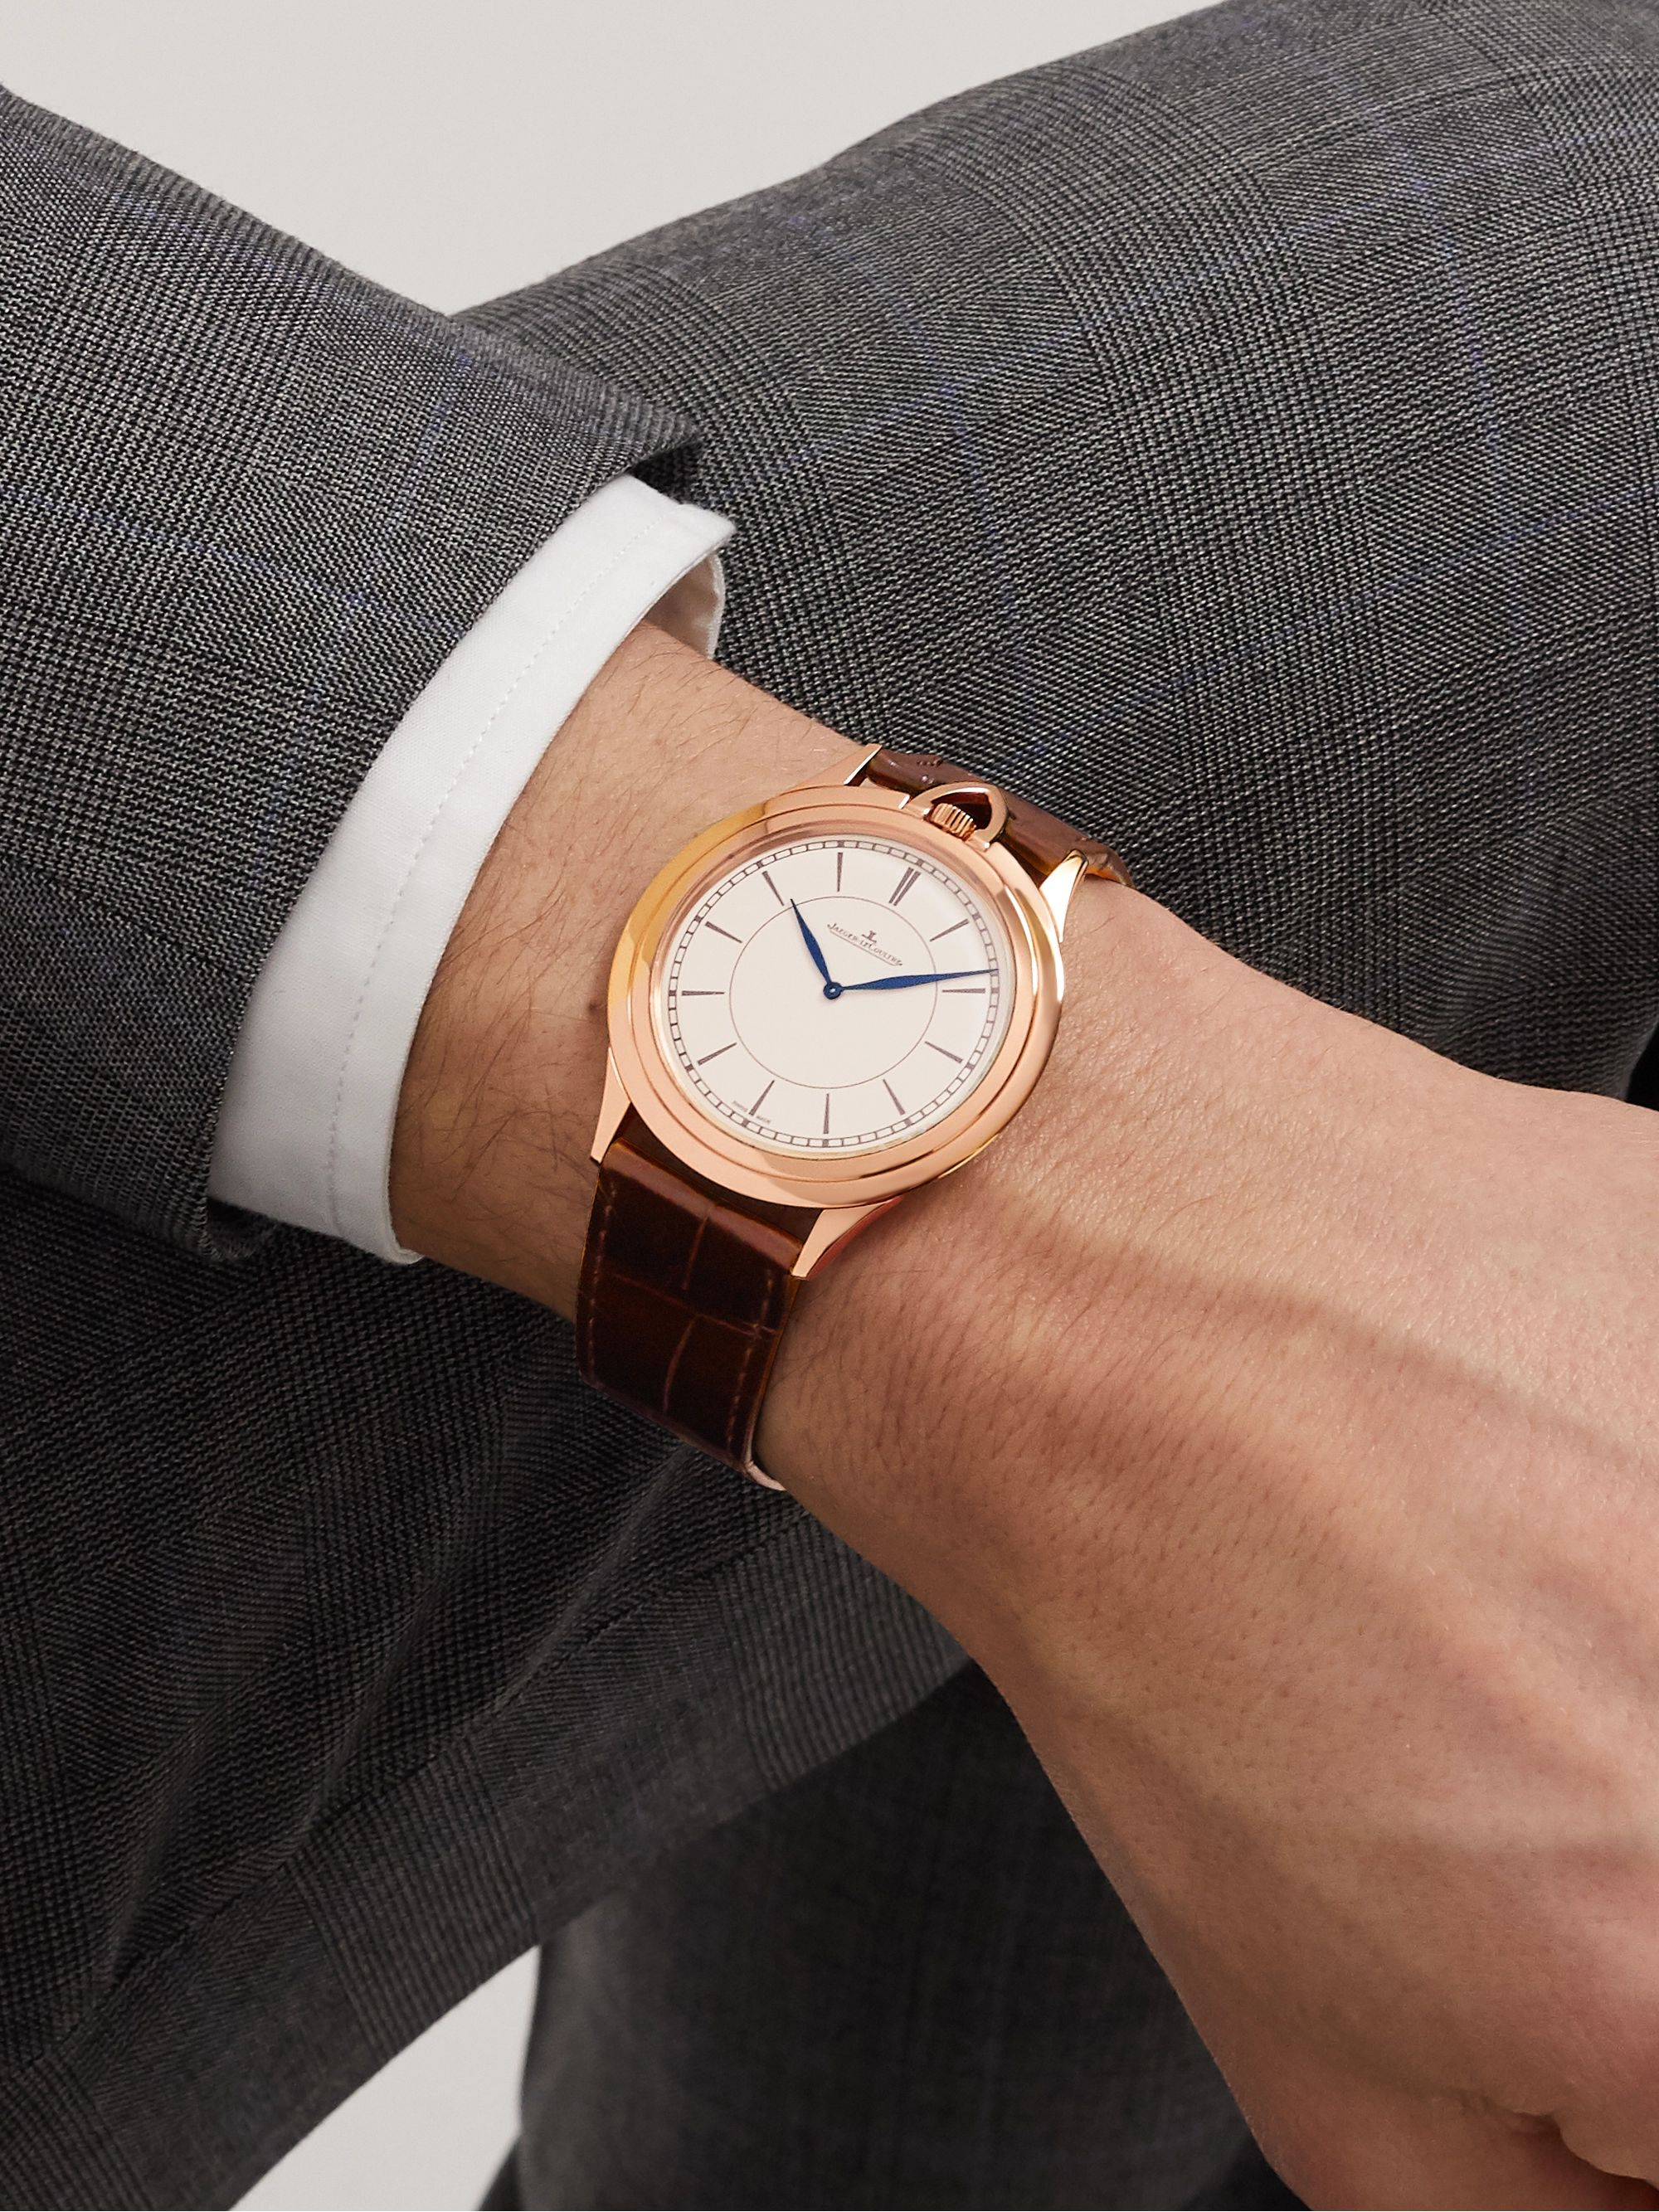 Jaeger-LeCoultre Limited Edition Master Ultra Thin Kingsman Knife 18-Karat Rose Gold and Alligator Watch, Ref. No. 3402393